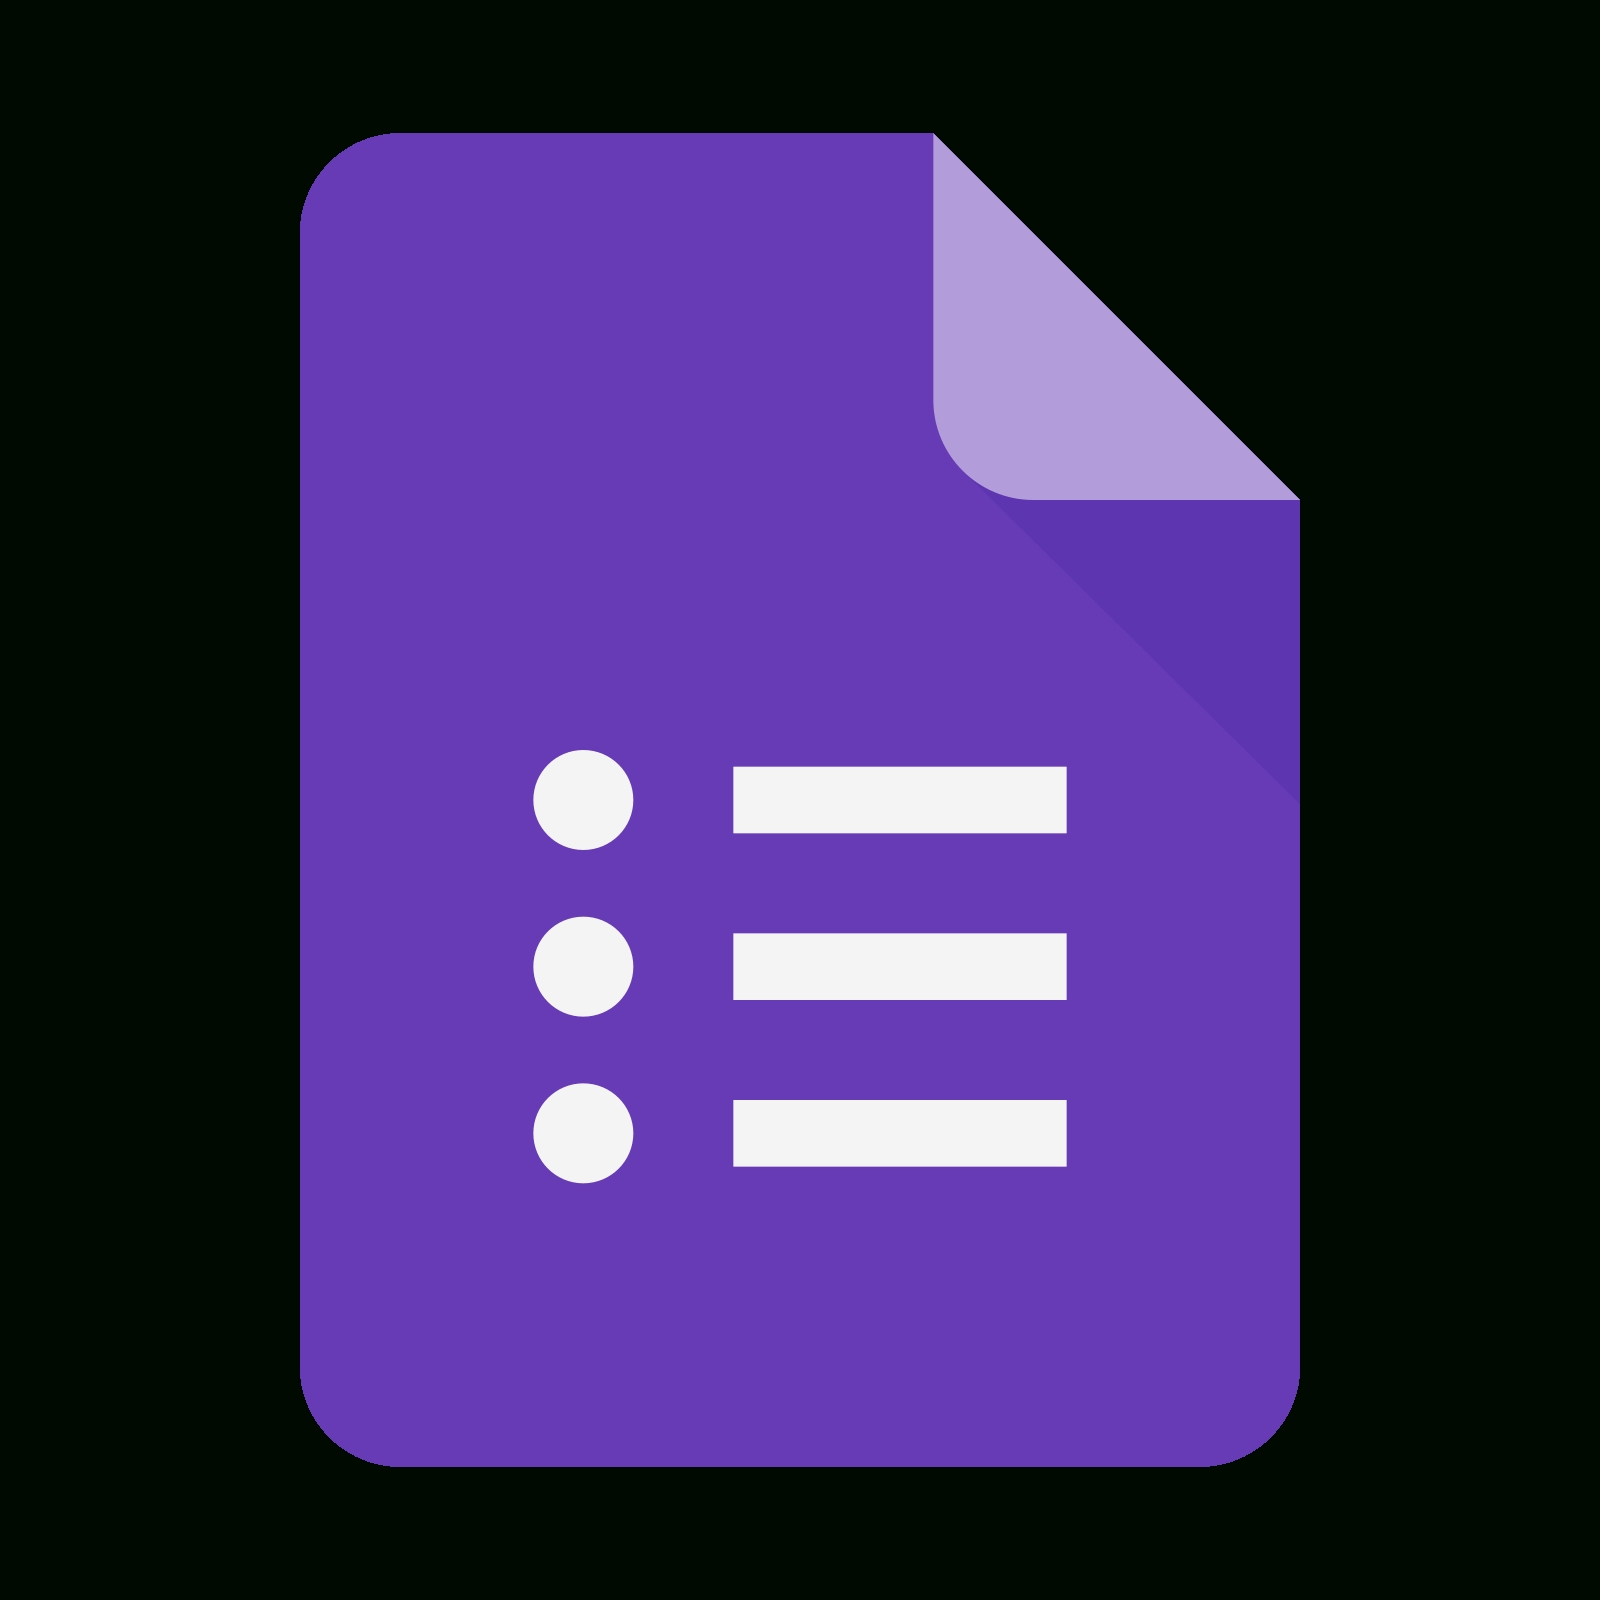 Google Forms New Logo Icon - Free Download, Png And Vector with Google Form Logo 23988